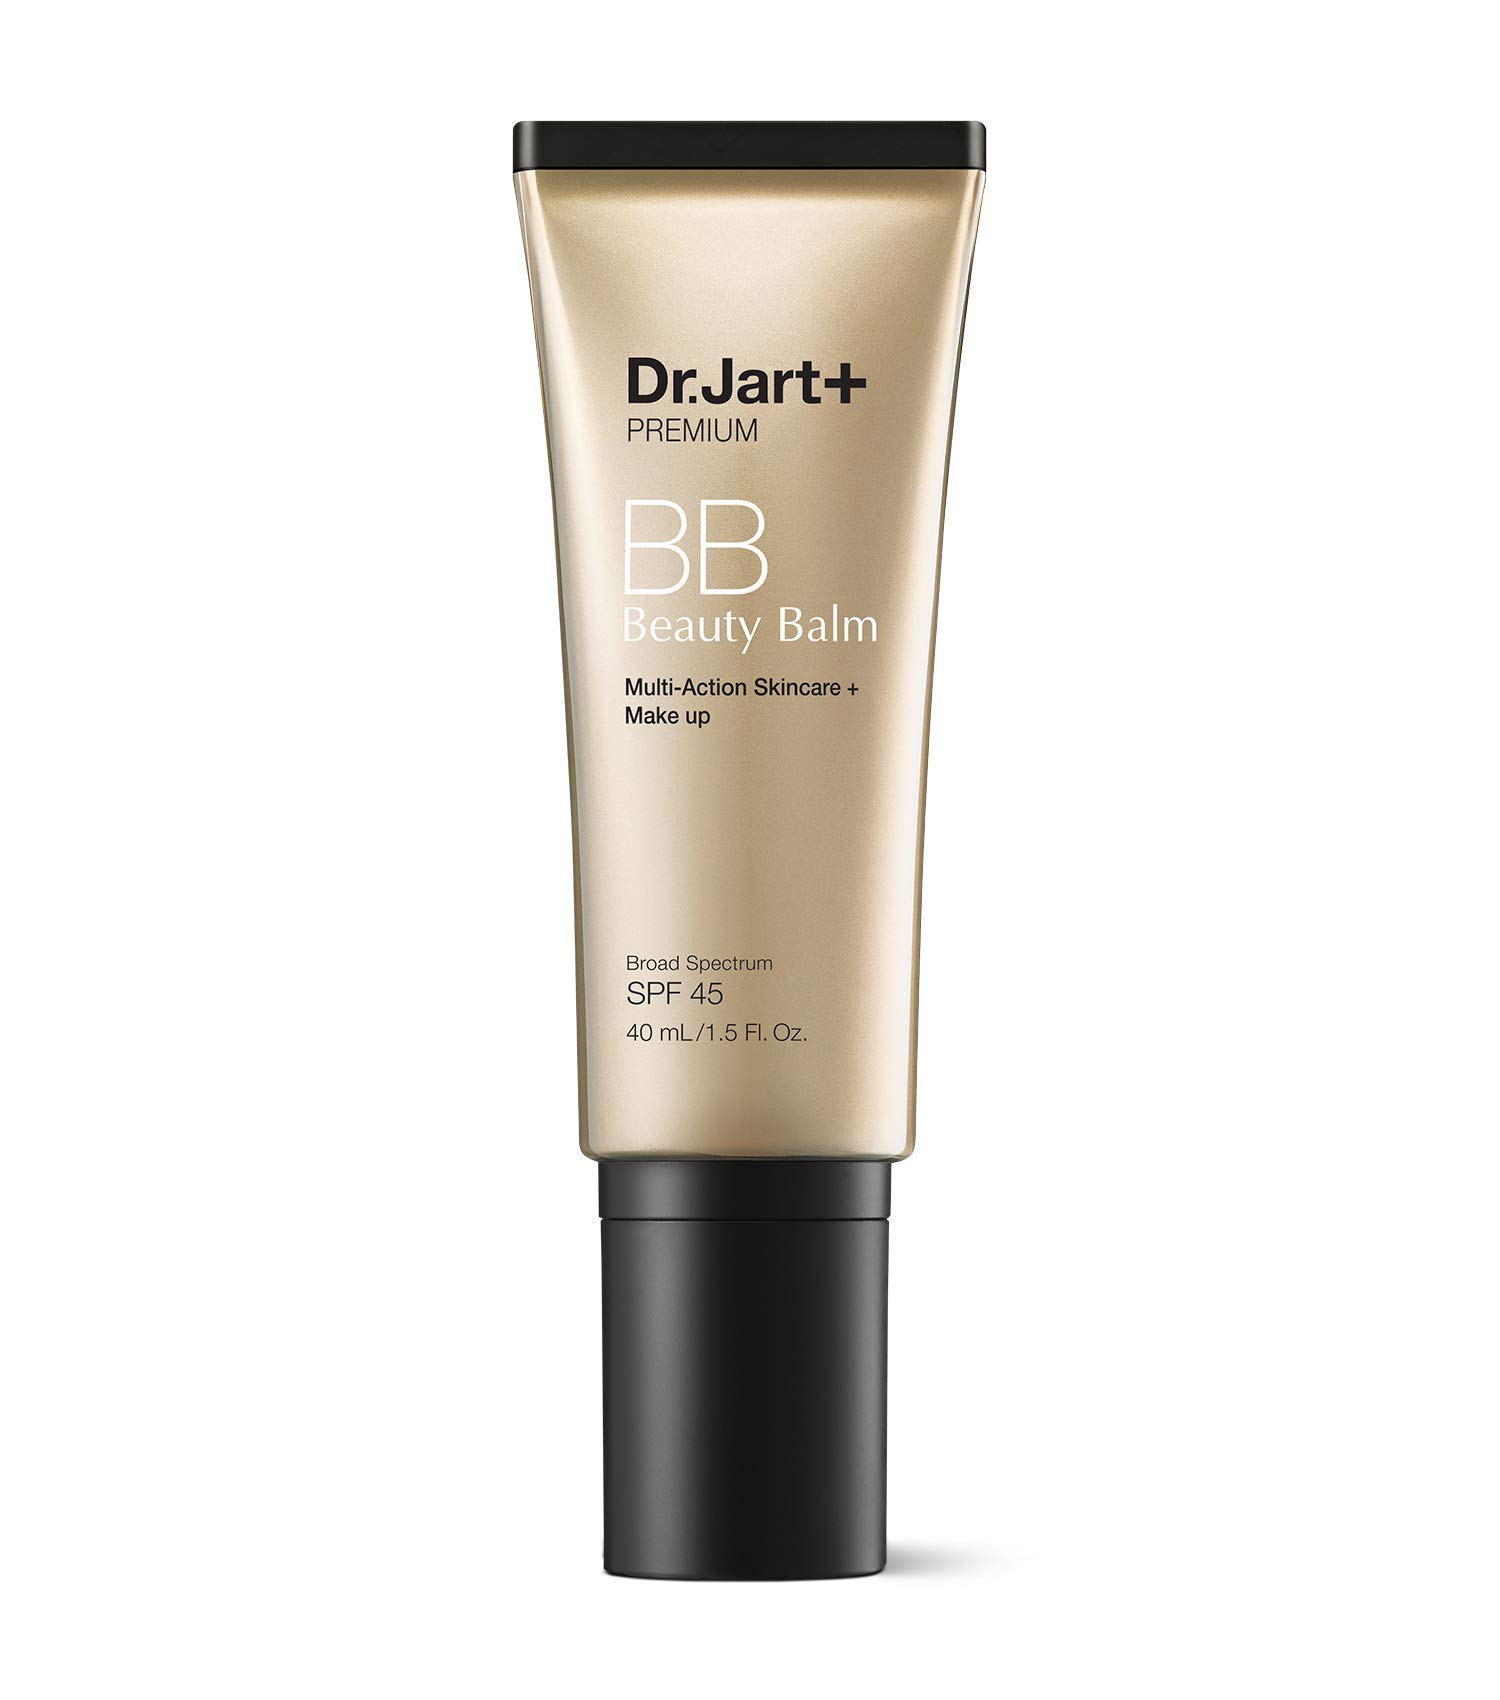 Dr. Jart+ Premium Beauty Balm SPF 45, No. 1 Light - Medium, 1.5 Ounce